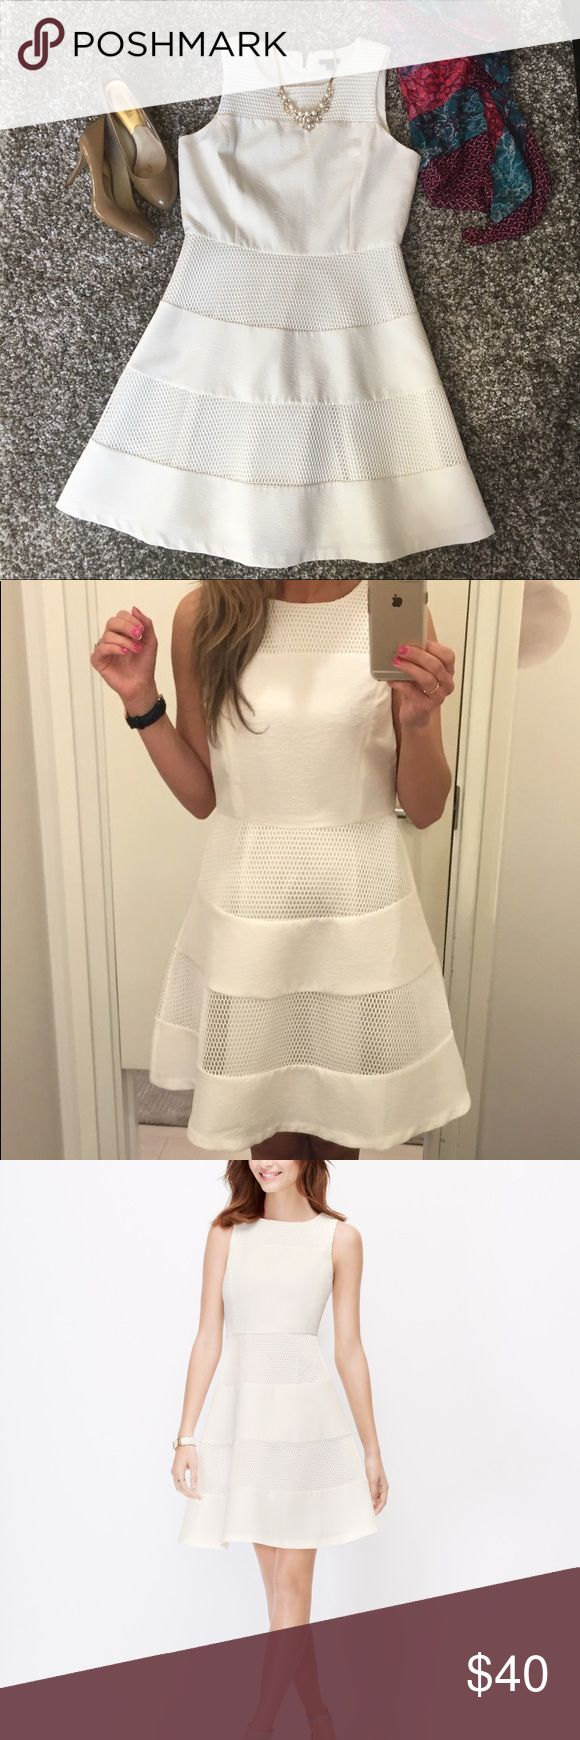 Ann Taylor White Mesh dress size 8 Ann Taylor White Mesh dress size 8. Freshly washed and in excellent condition. Fit and flare style that is very flattering. Zips up the back. Fully lined. Ann Taylor Dresses Midi